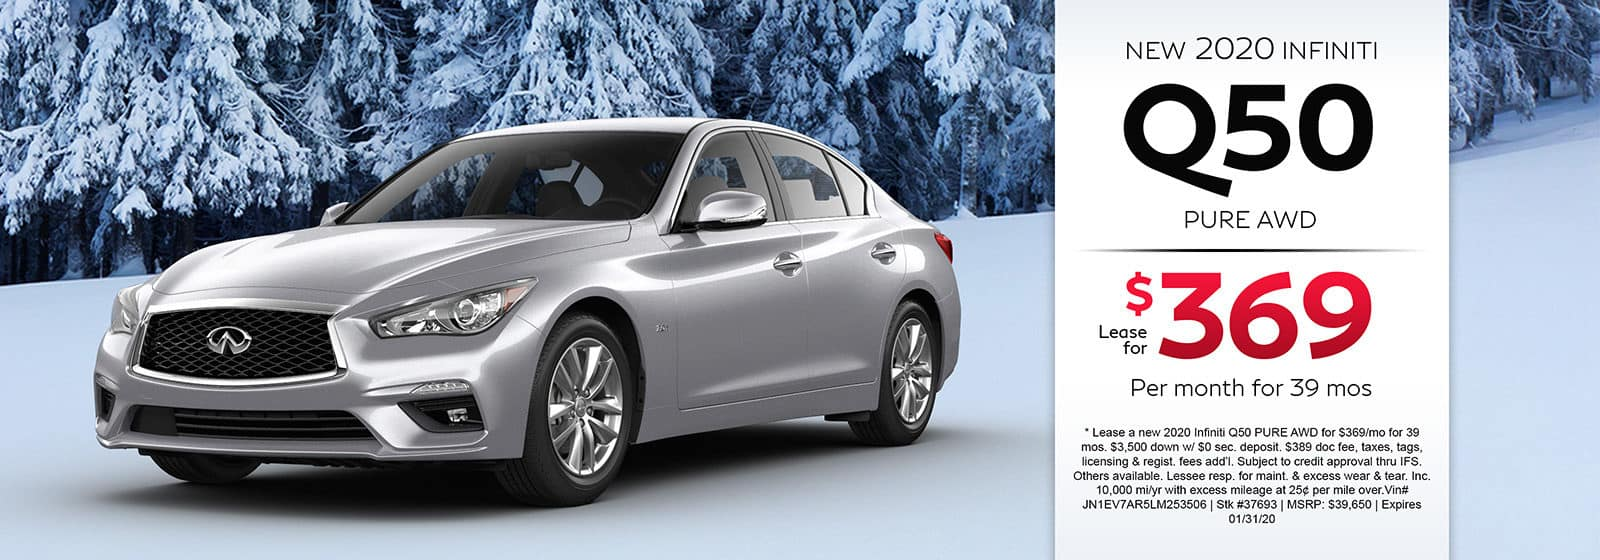 Lease a new 2020 INFINITI Q50 PURE AWD for $369 a month for 39 months.